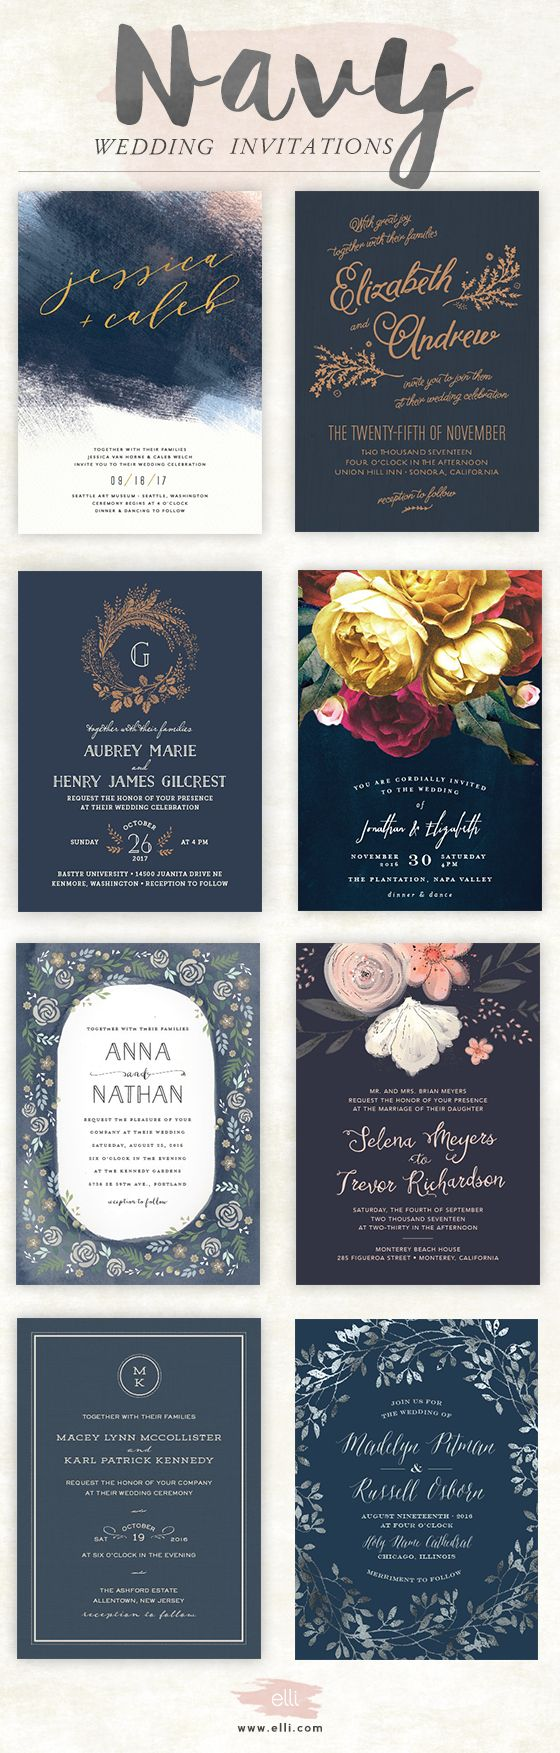 designing wedding cards